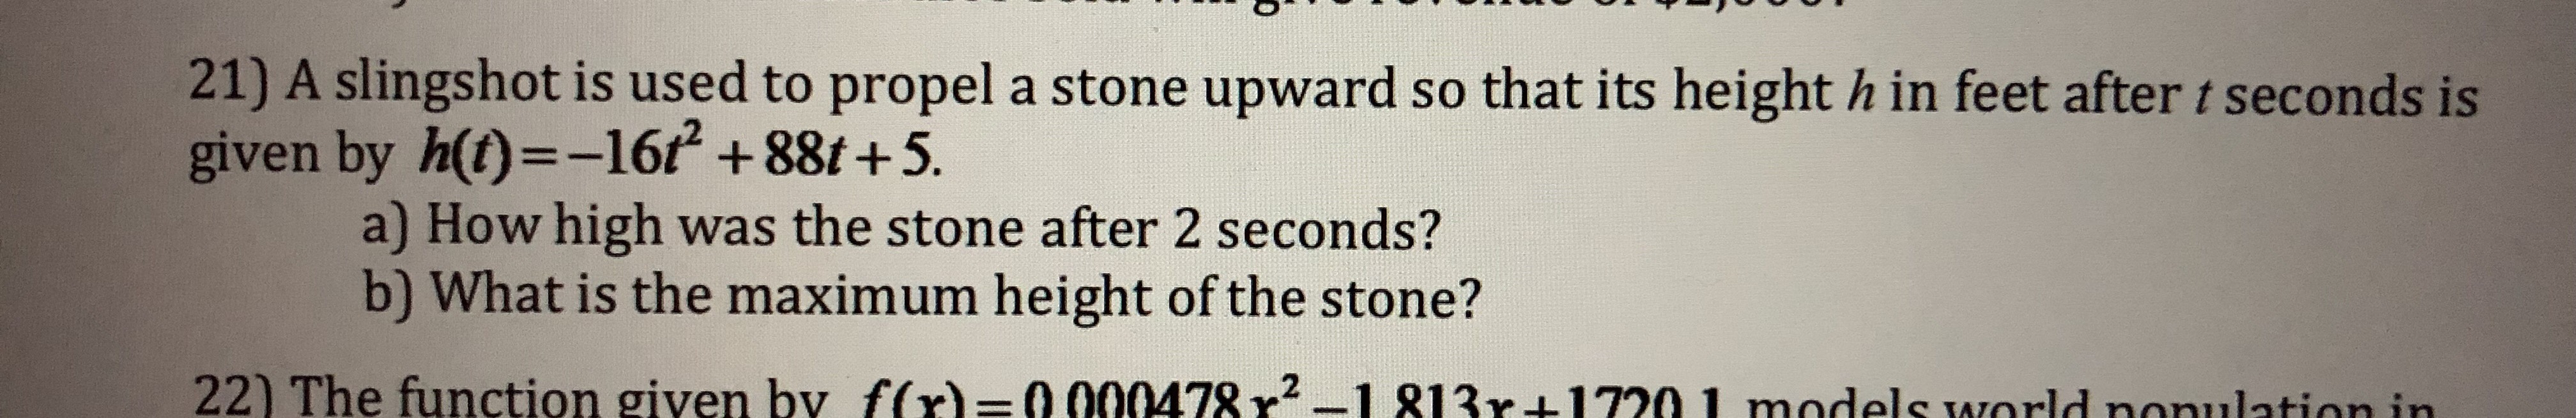 21) A slingshot is used to propel a stone upward so that its height h in feet after t seconds is given by h(t)--162 +88t +5. a) How high was the stone after 2 seconds? b) What is the maximum height of the stone? 22) The function given by f(x)=0 000478 r2-1 813r+1720 I models world nonulat